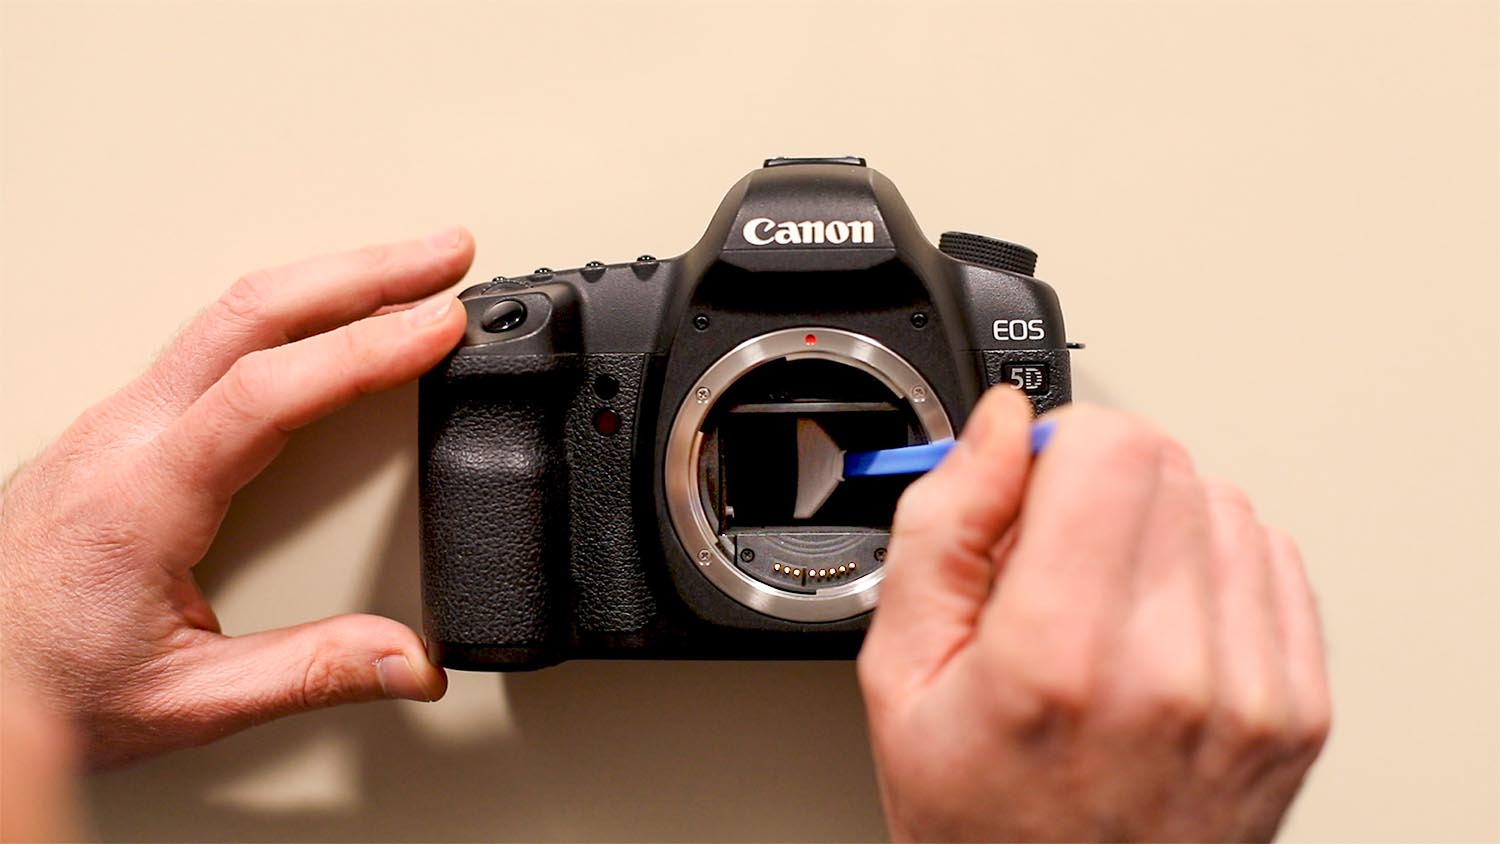 Clean the camera sensor with the swab